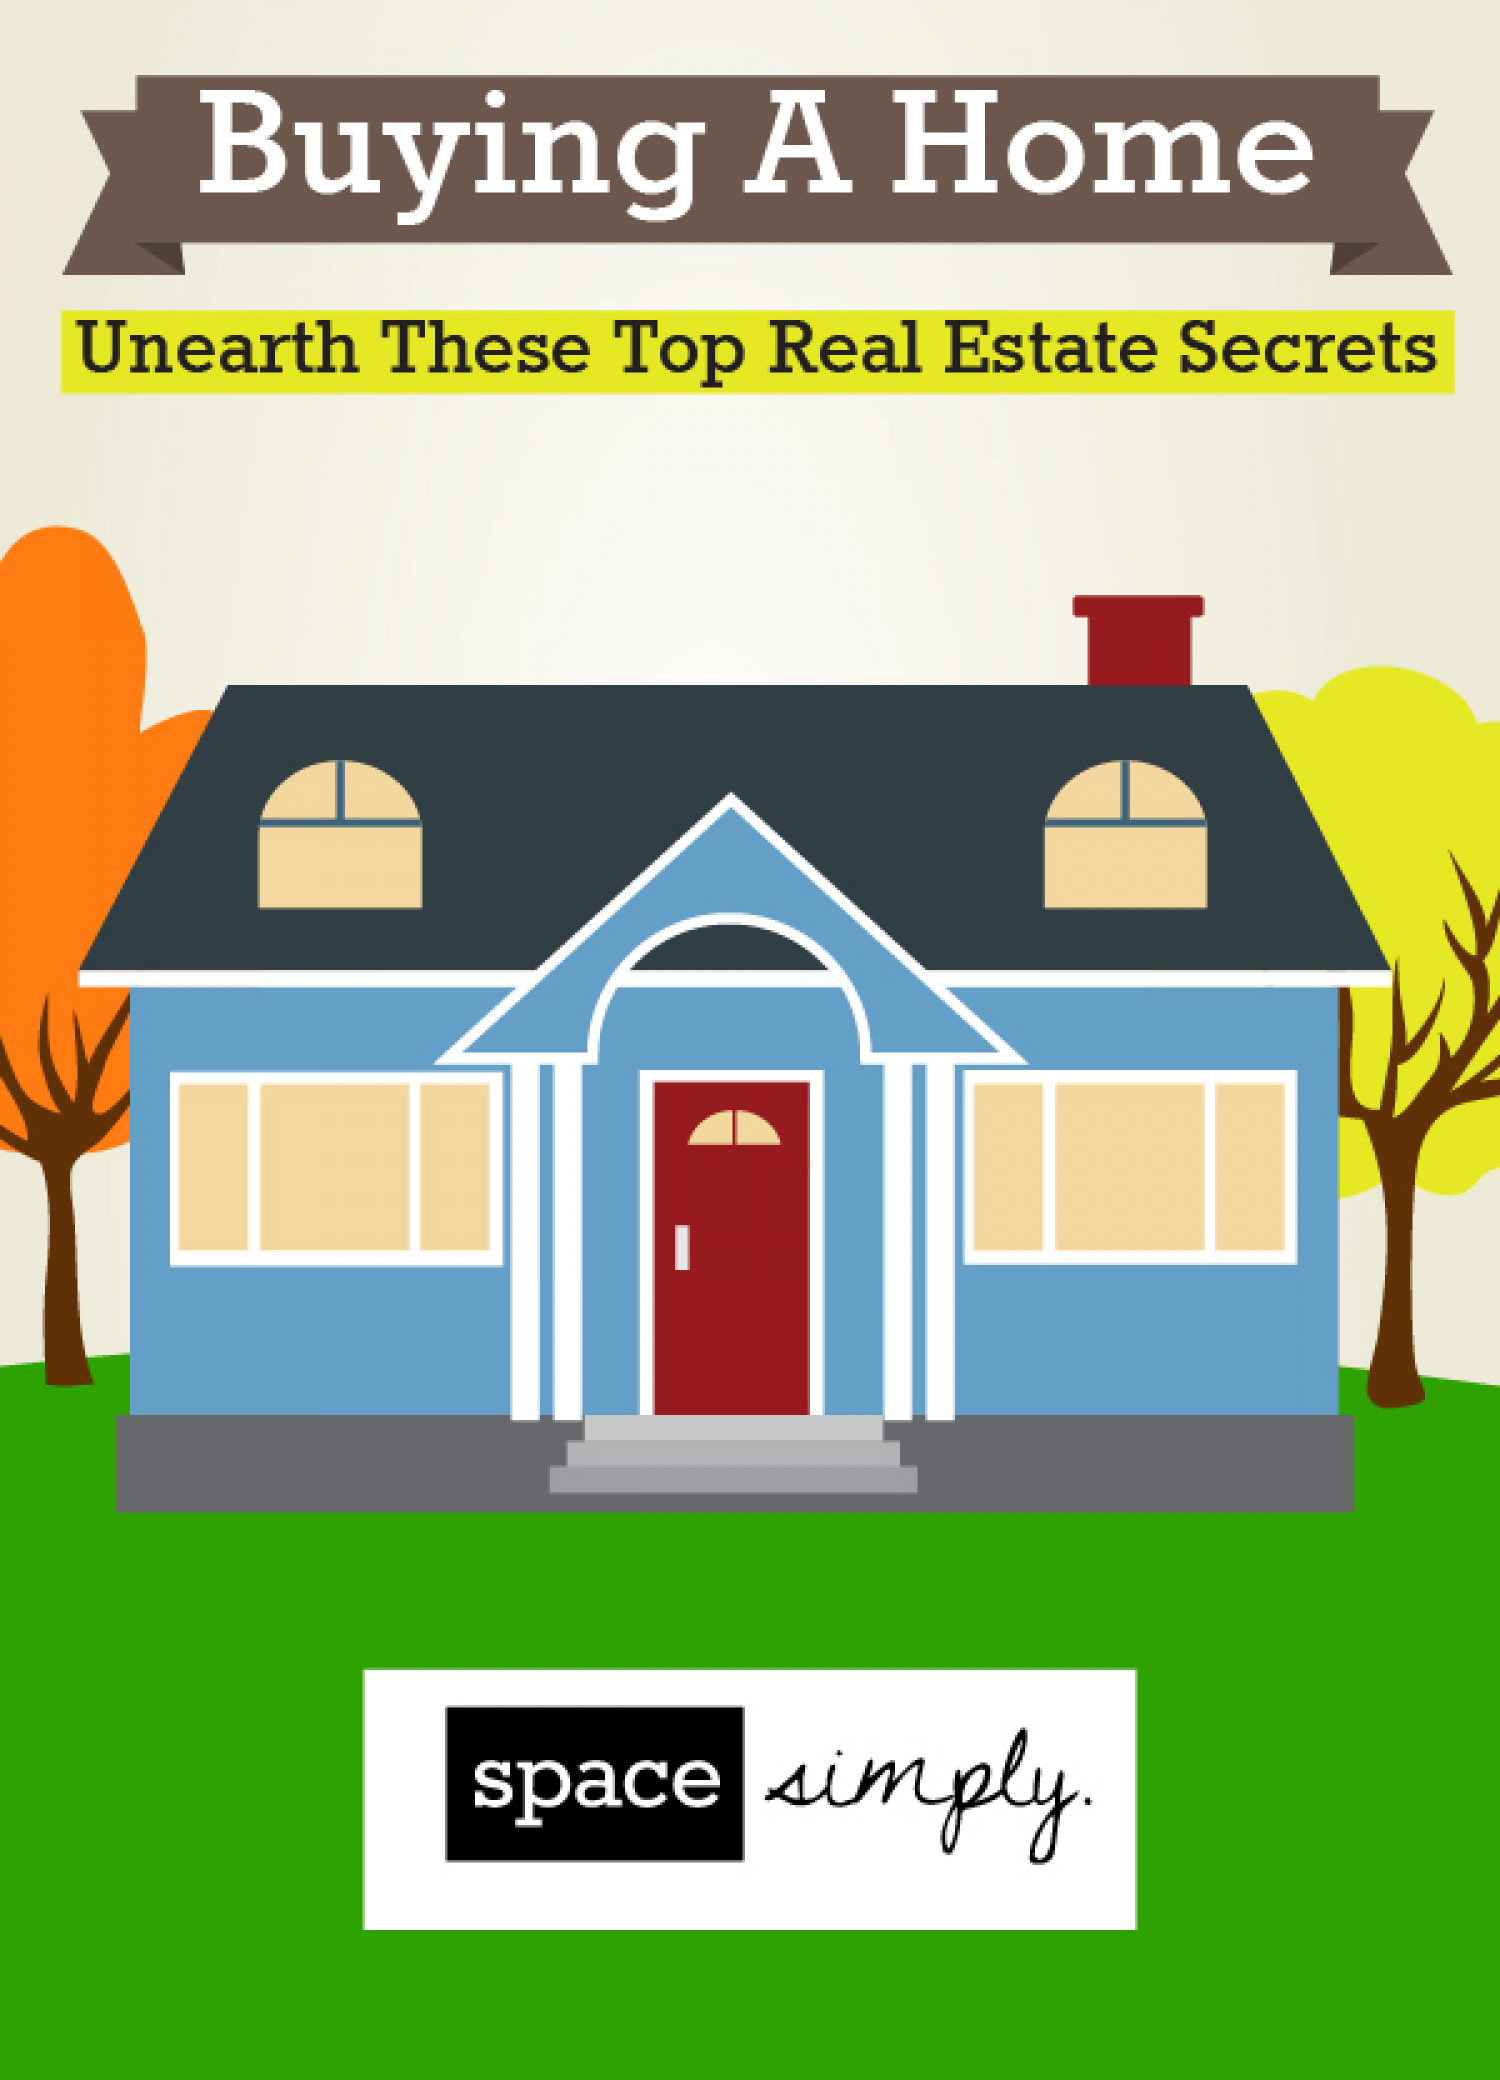 Buying A Home: Unearth These Top Real Estate Secrets Infographic